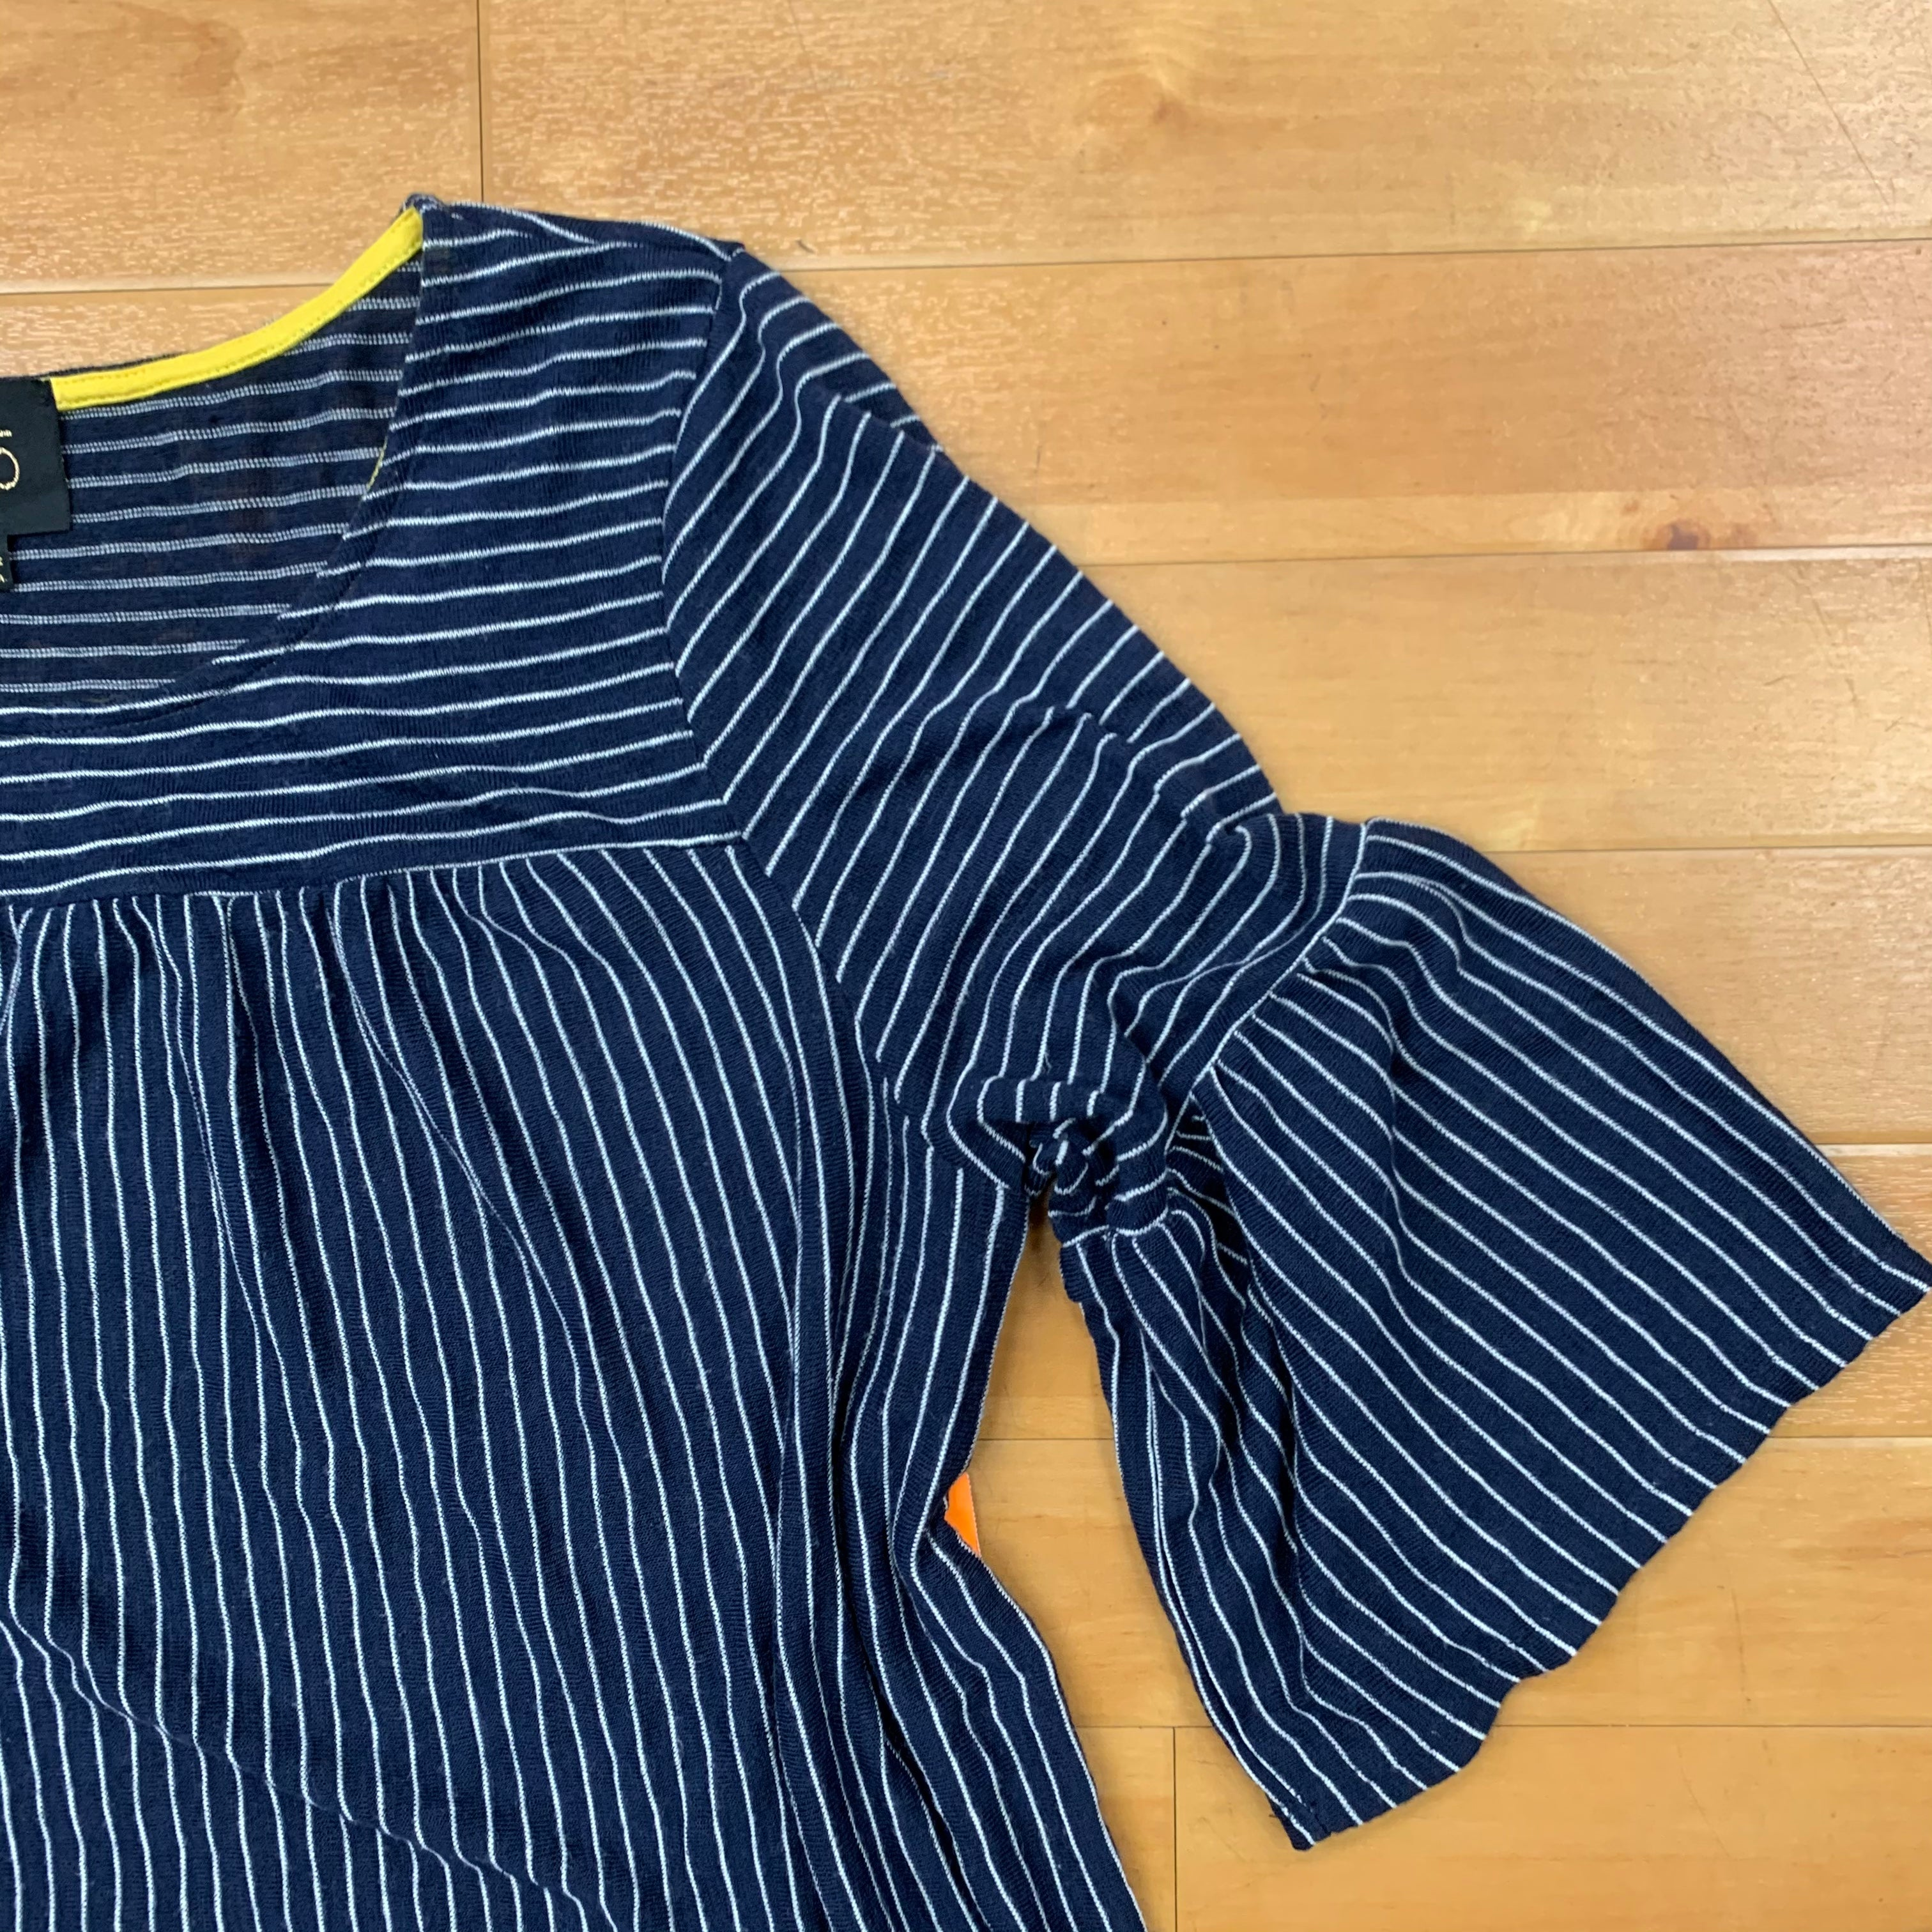 Top Short Sleeve By W5  Size: 2x - BRAND: W5 <BR>STYLE: TOP SHORT SLEEVE <BR>COLOR: STRIPED <BR>SIZE: 2X <BR>OTHER INFO: NAVY AND WHITE STRIPED <BR>SKU: 257-25758-398